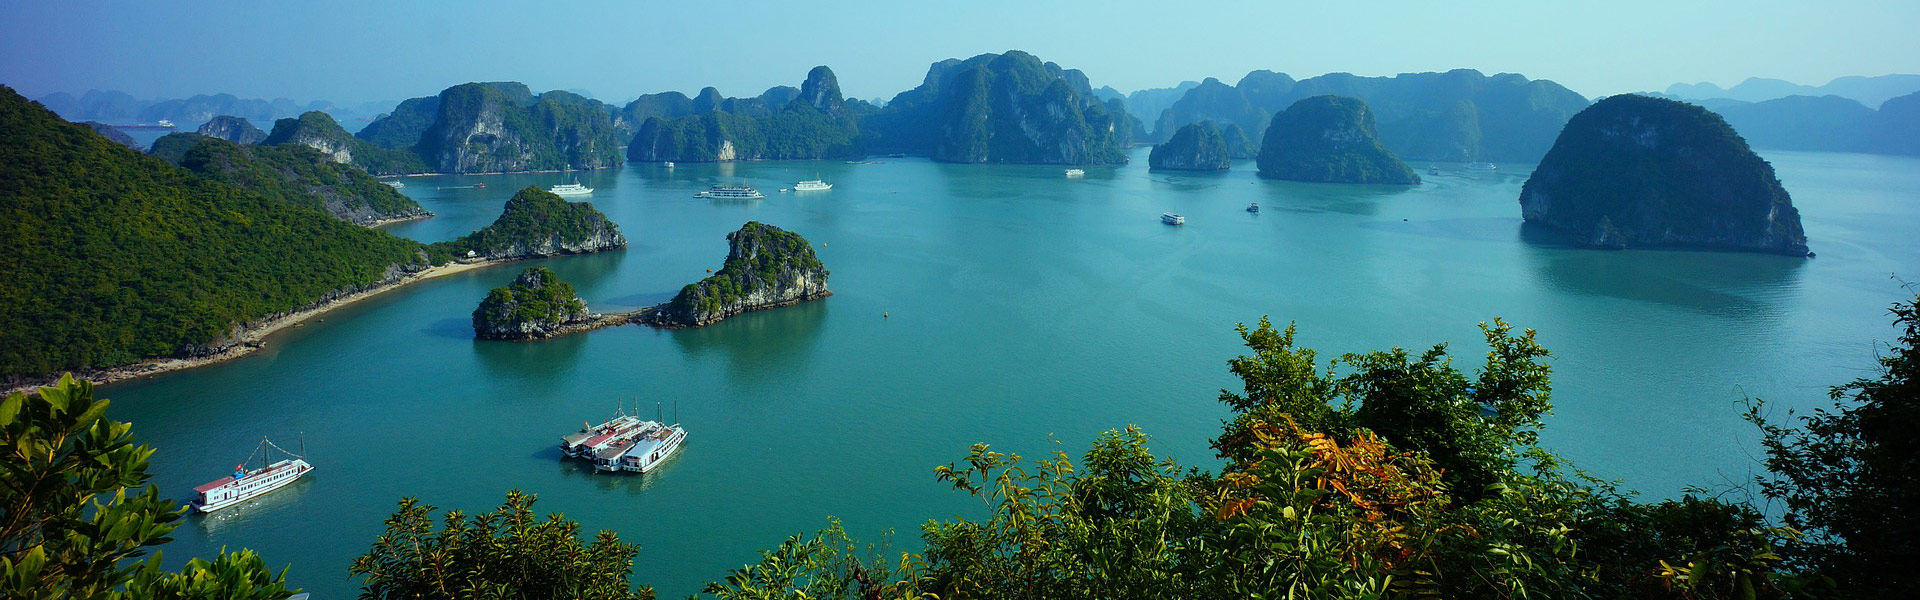 Scenic Places To Visit In Vietnam